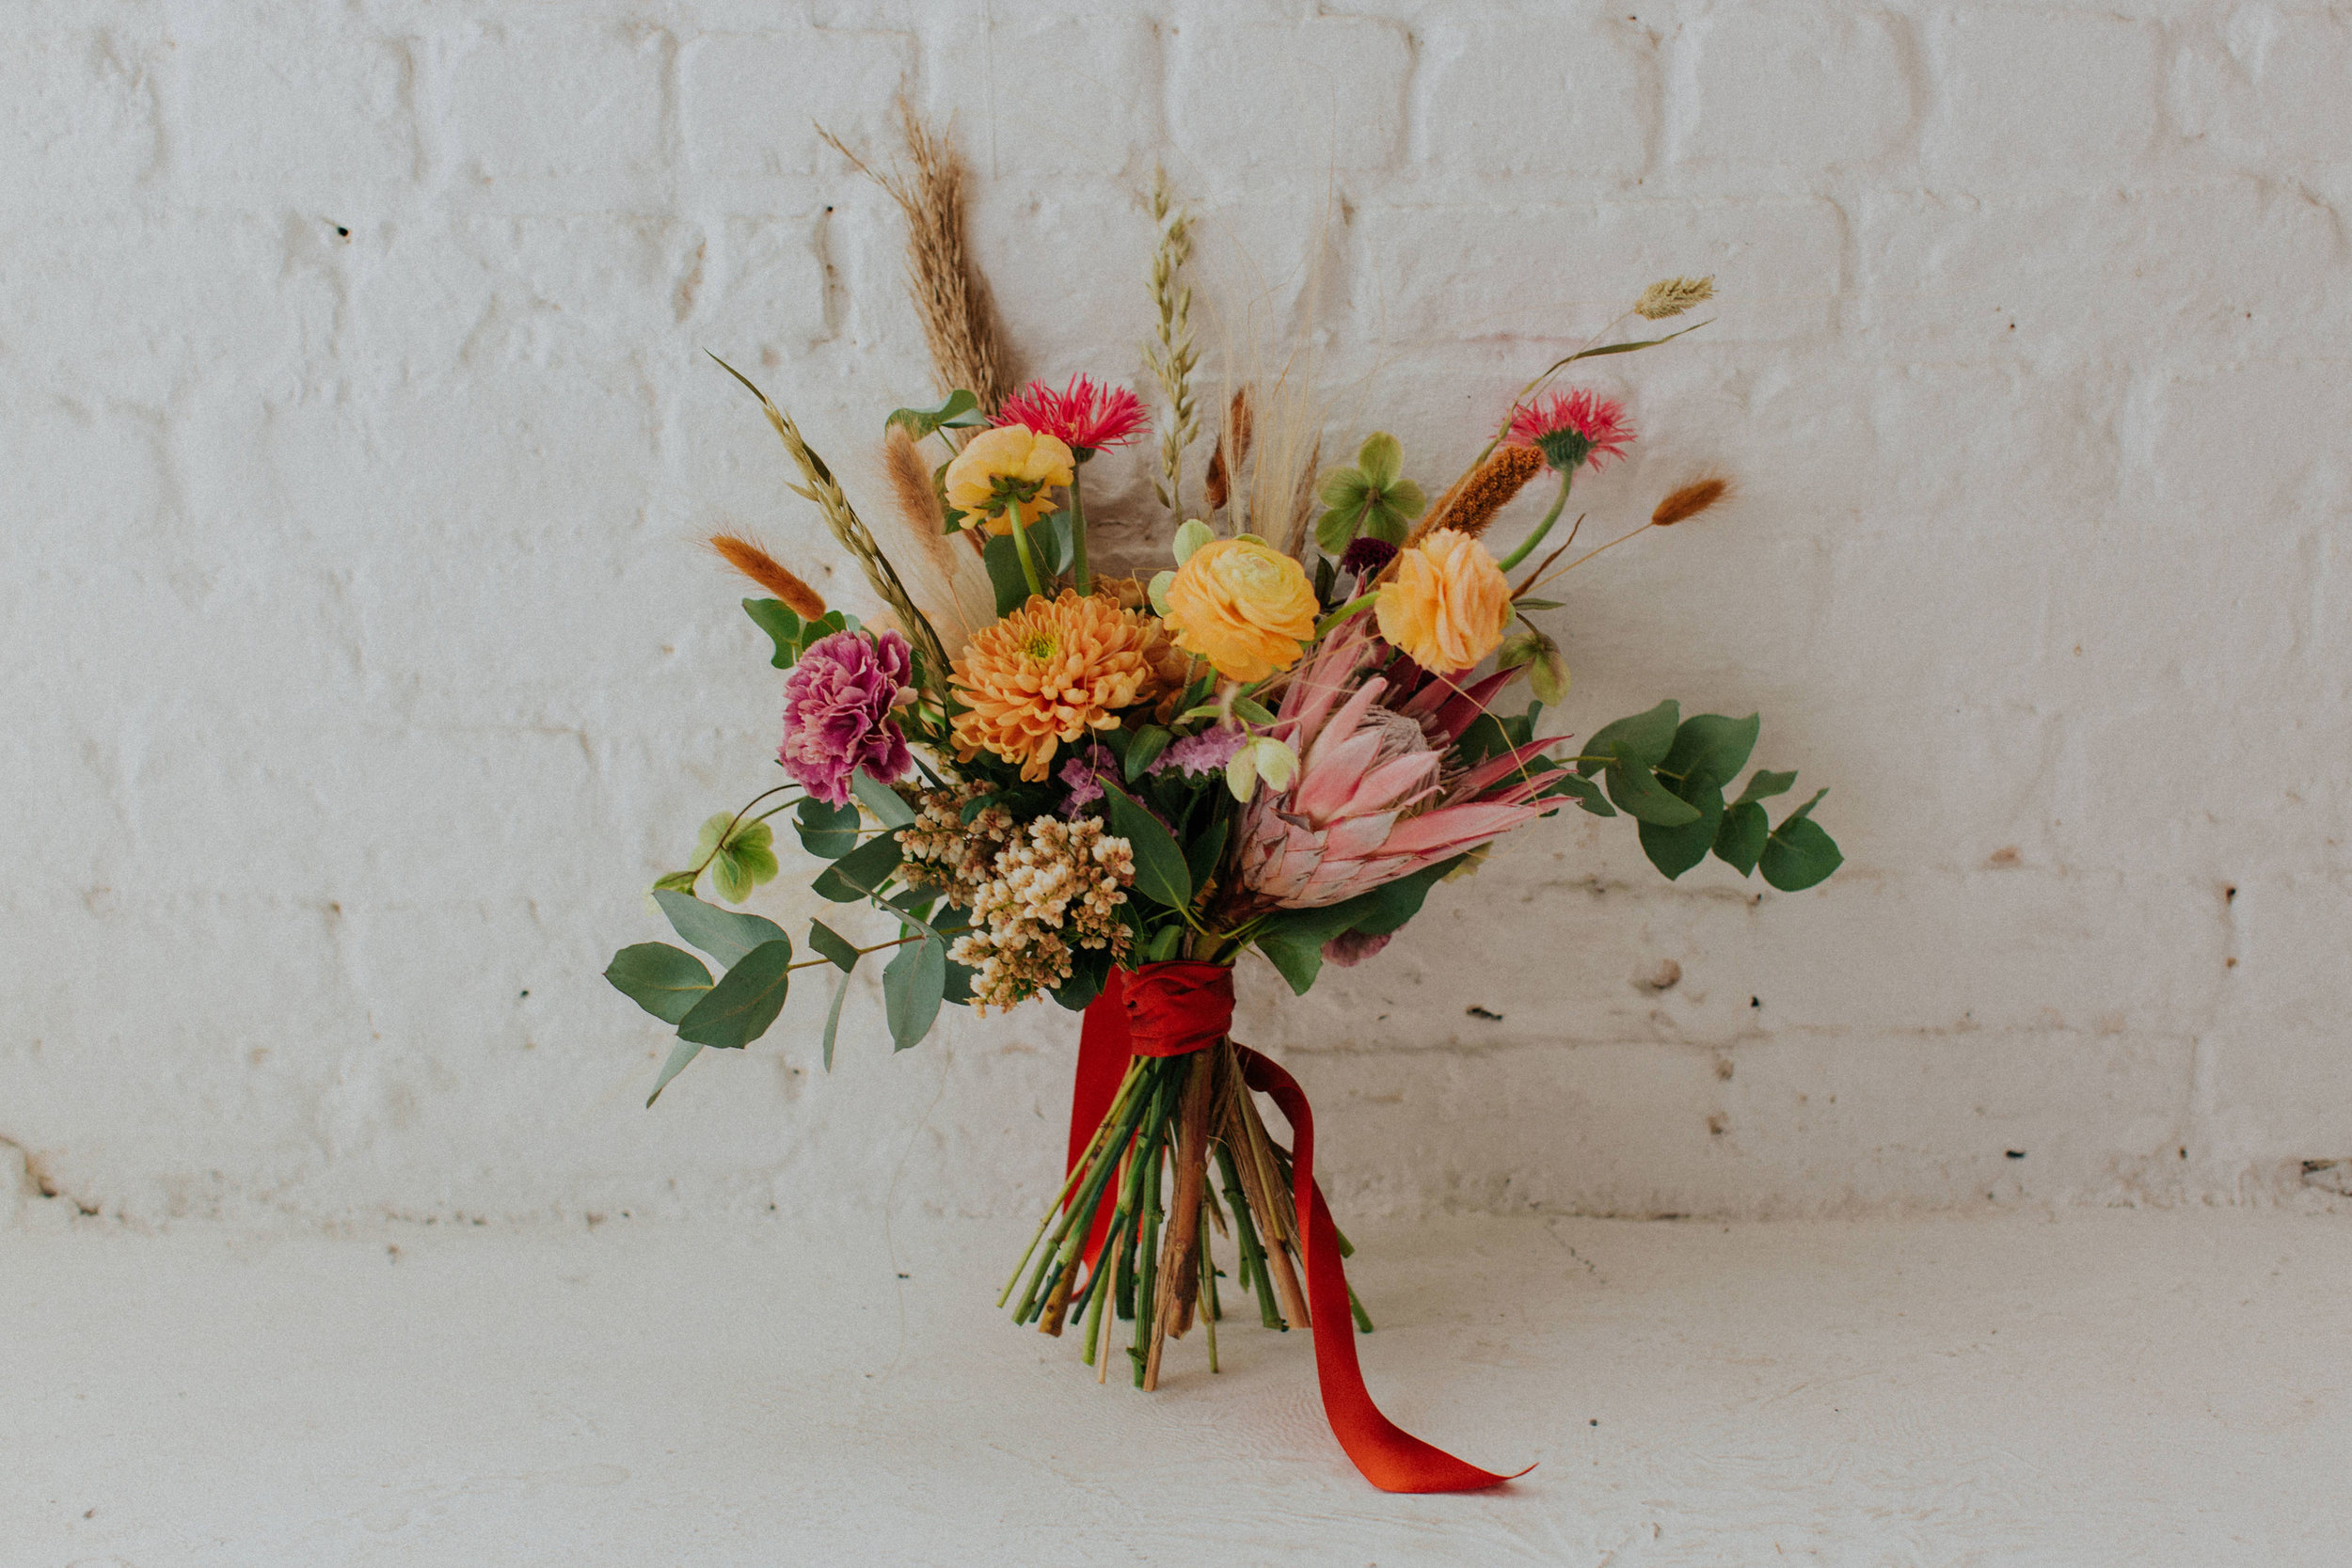 Hannah Elizabeth Flowers - Floral stylist based in Manchester, no plastic packaging and cool styling.